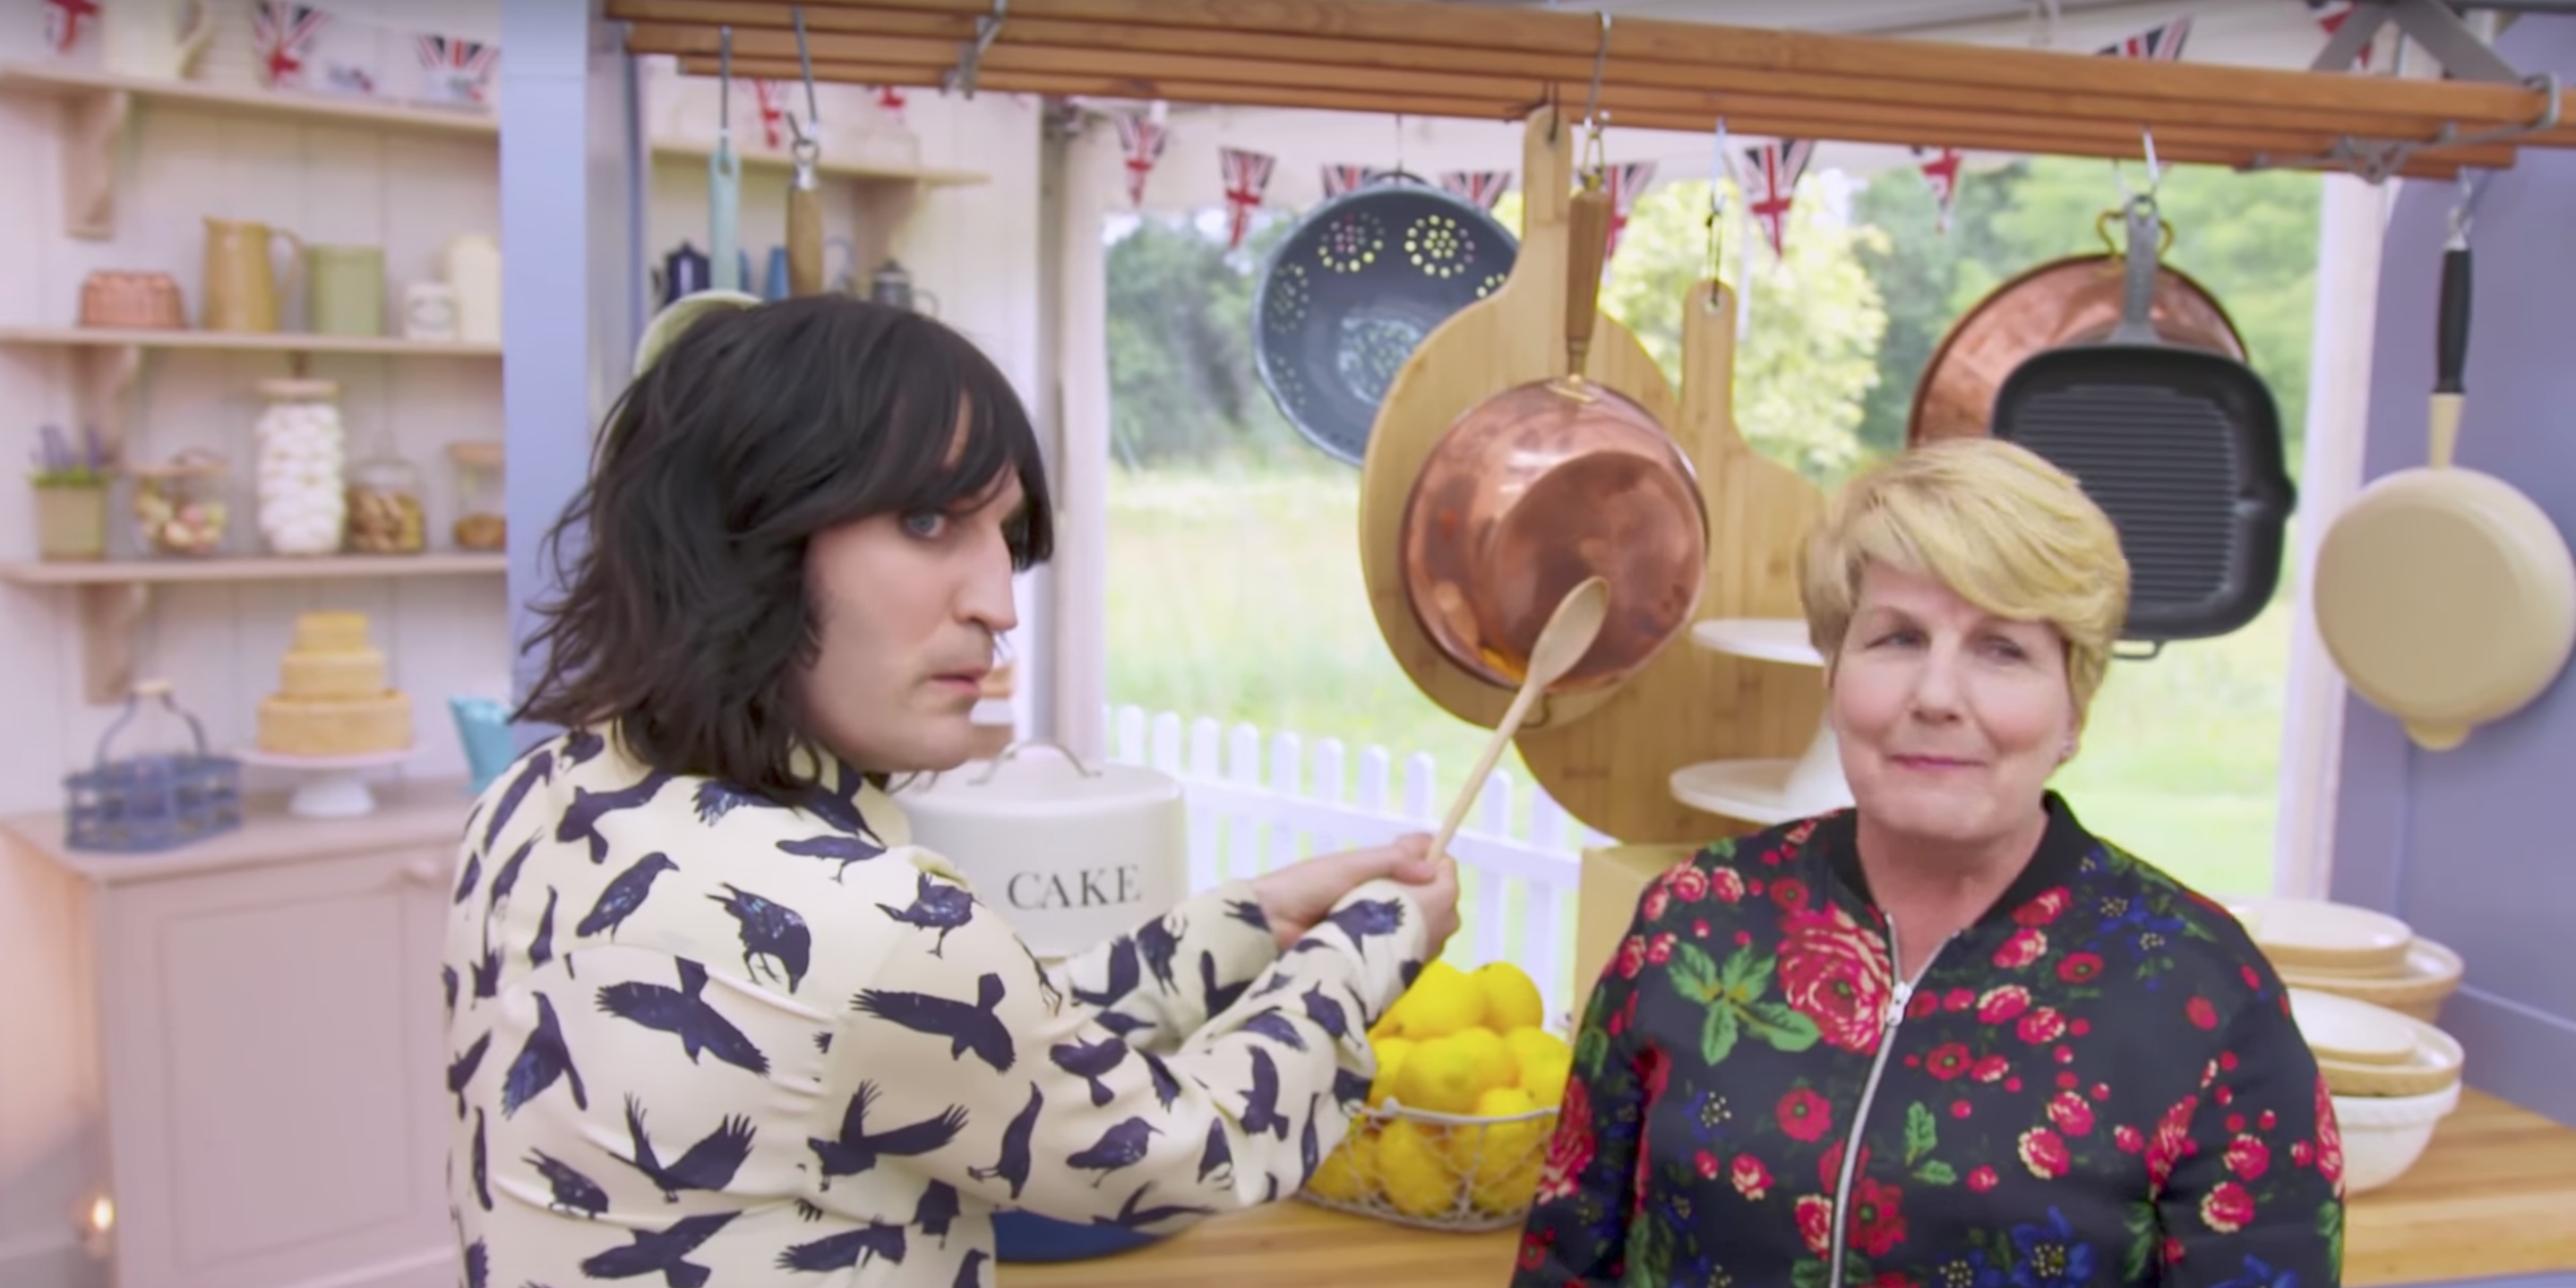 Noel Fielding and Sandi Toksvig in The Great British Bake Off